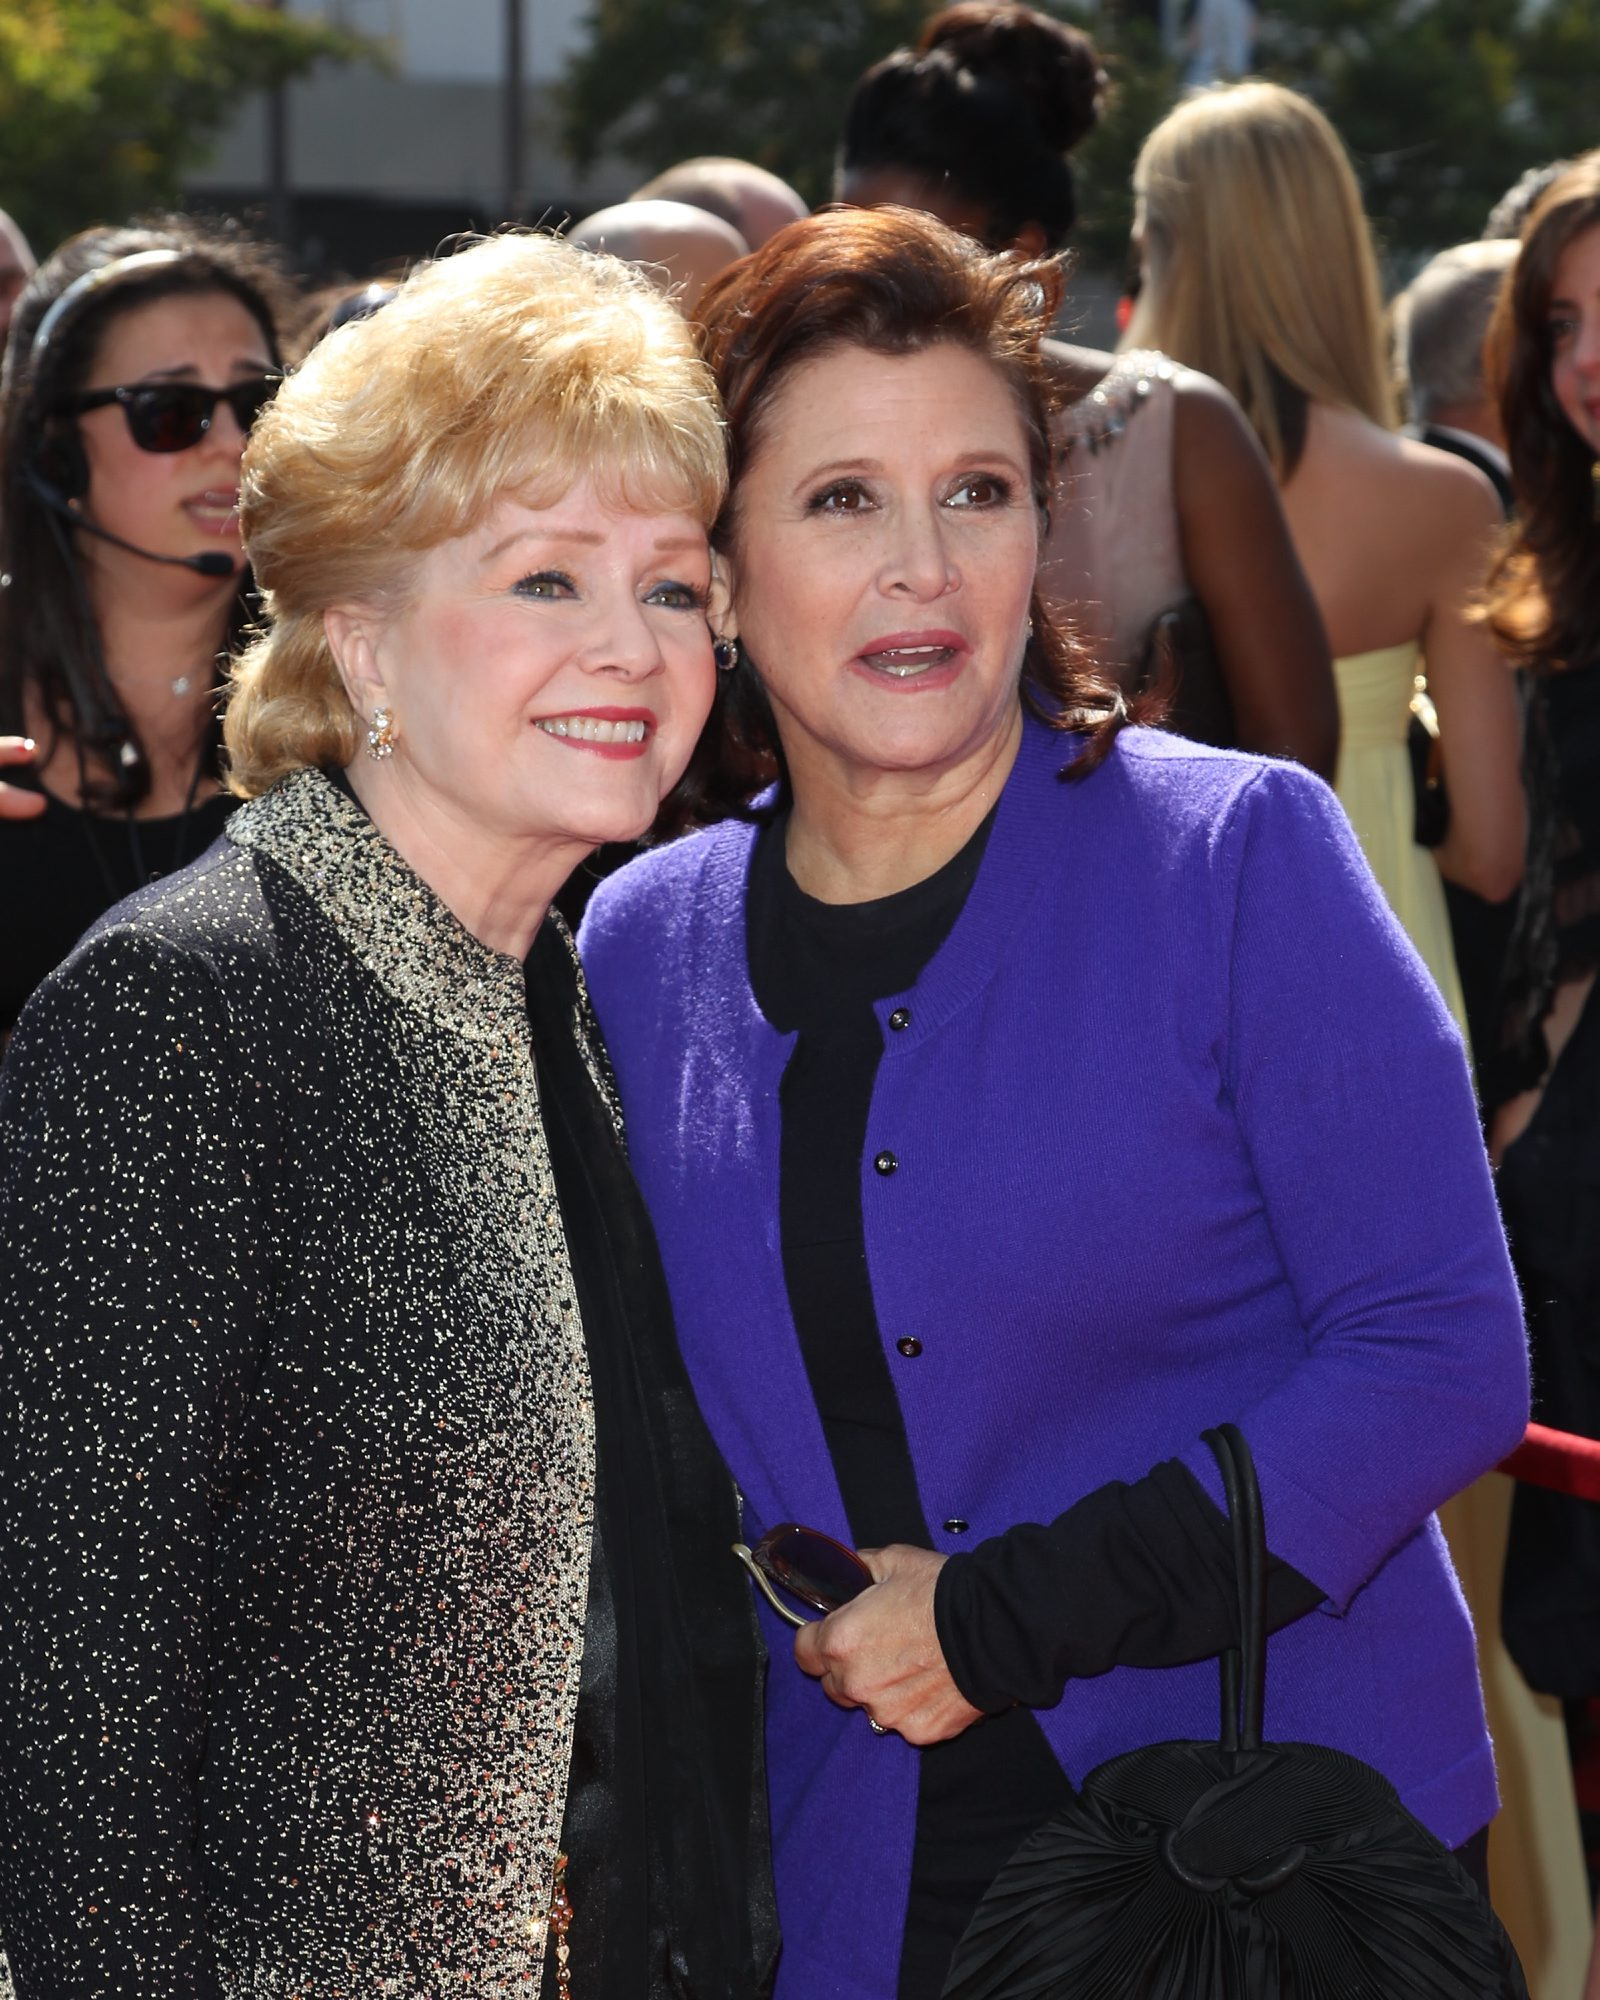 Carrie Fisher, right, attended the 2011 Primetime Creative Arts Emmy Awards in 2011 with her mother, Debbie Reynolds. (Noel Vasquez/Getty Images)